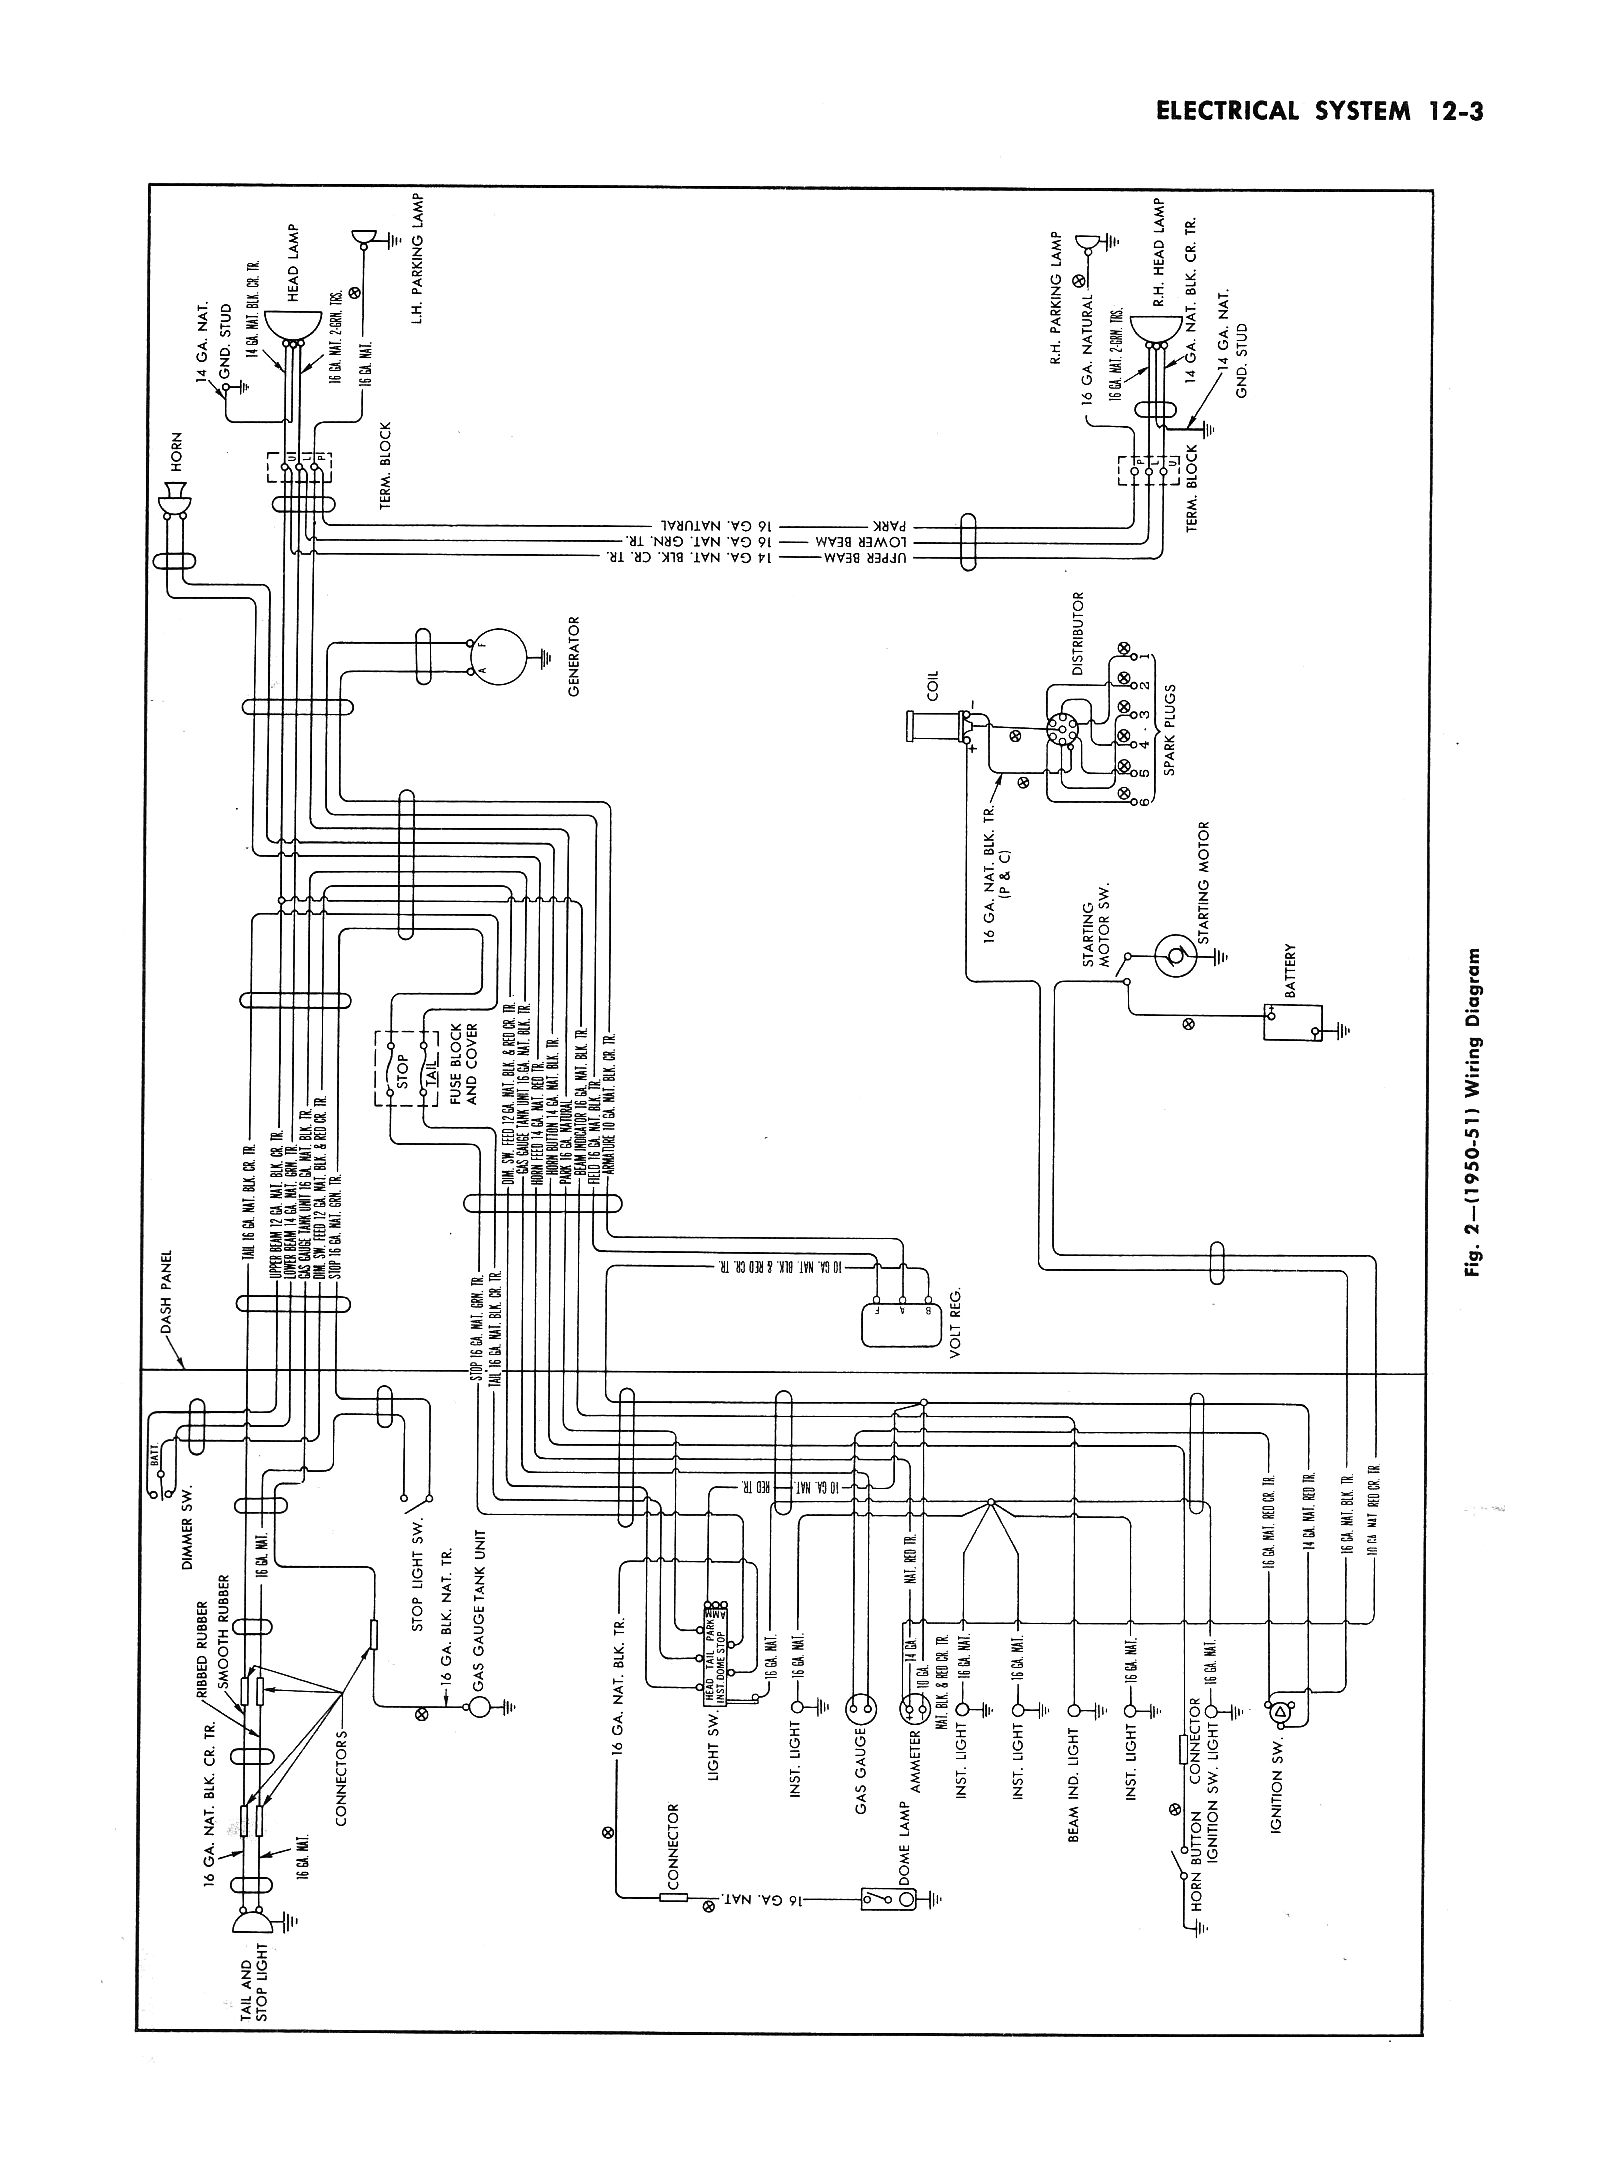 51ctsm1203 1949 chevy pickup wiring diagram on 1949 download wirning diagrams 89 chevy truck ignition switch wiring diagram at honlapkeszites.co